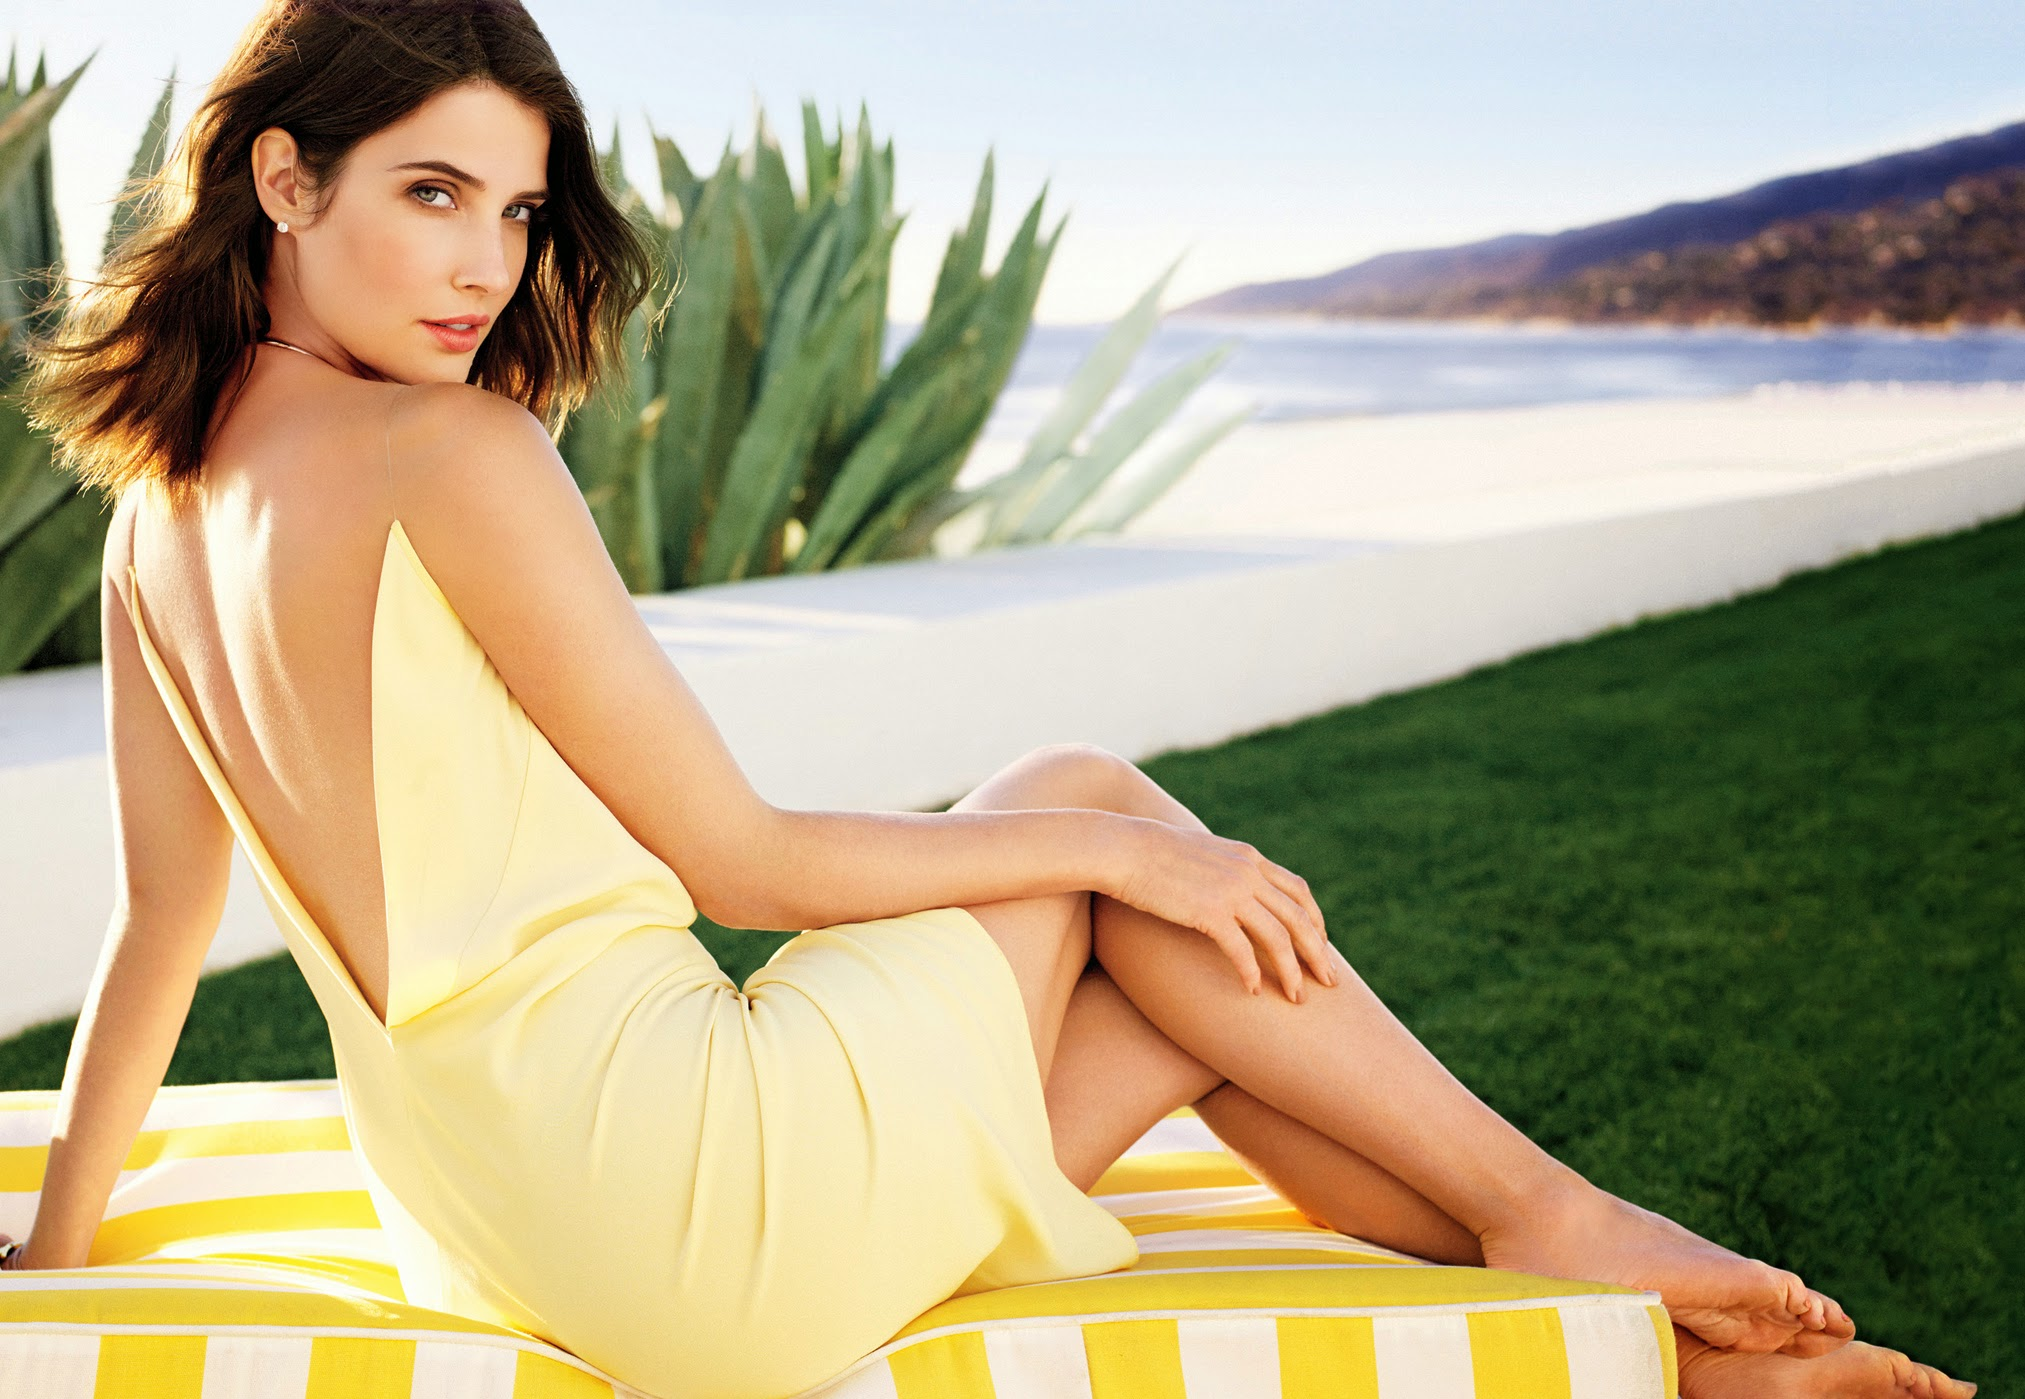 Sexy Cobie Smulders nudes (41 foto and video), Ass, Sideboobs, Instagram, butt 2006